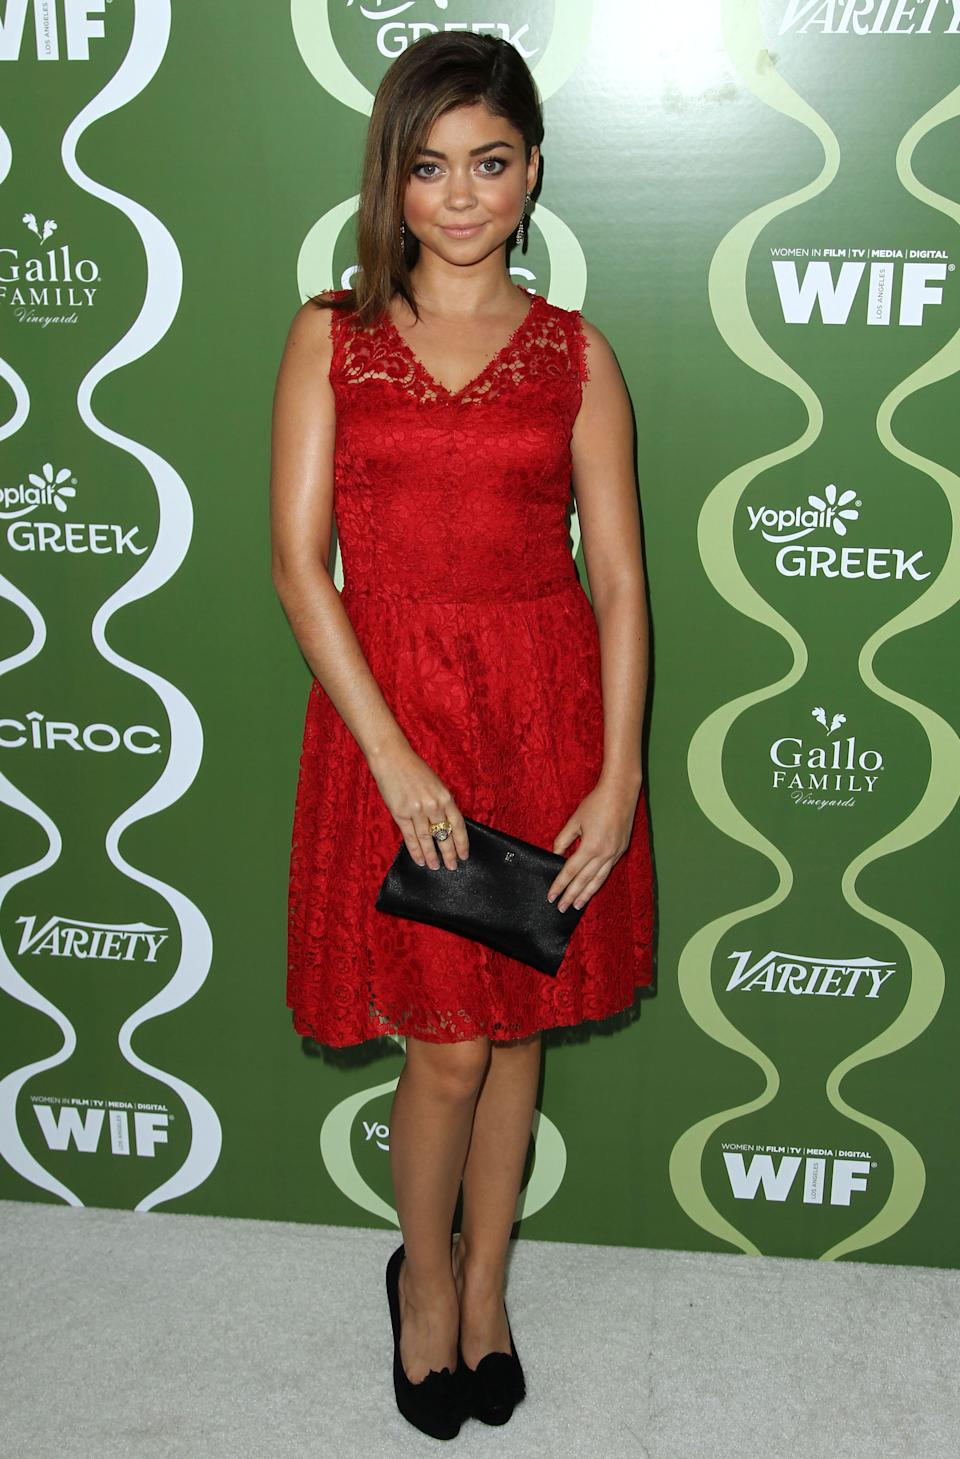 Sarah Hyland arrives at the 2013 Women In Film pre-emmy event at Scarpetta at the Montage Hotel on Friday, Sept. 20, 2013 in Beverly Hills, Calif. (Photo by Matt Sayles/Invision/AP)